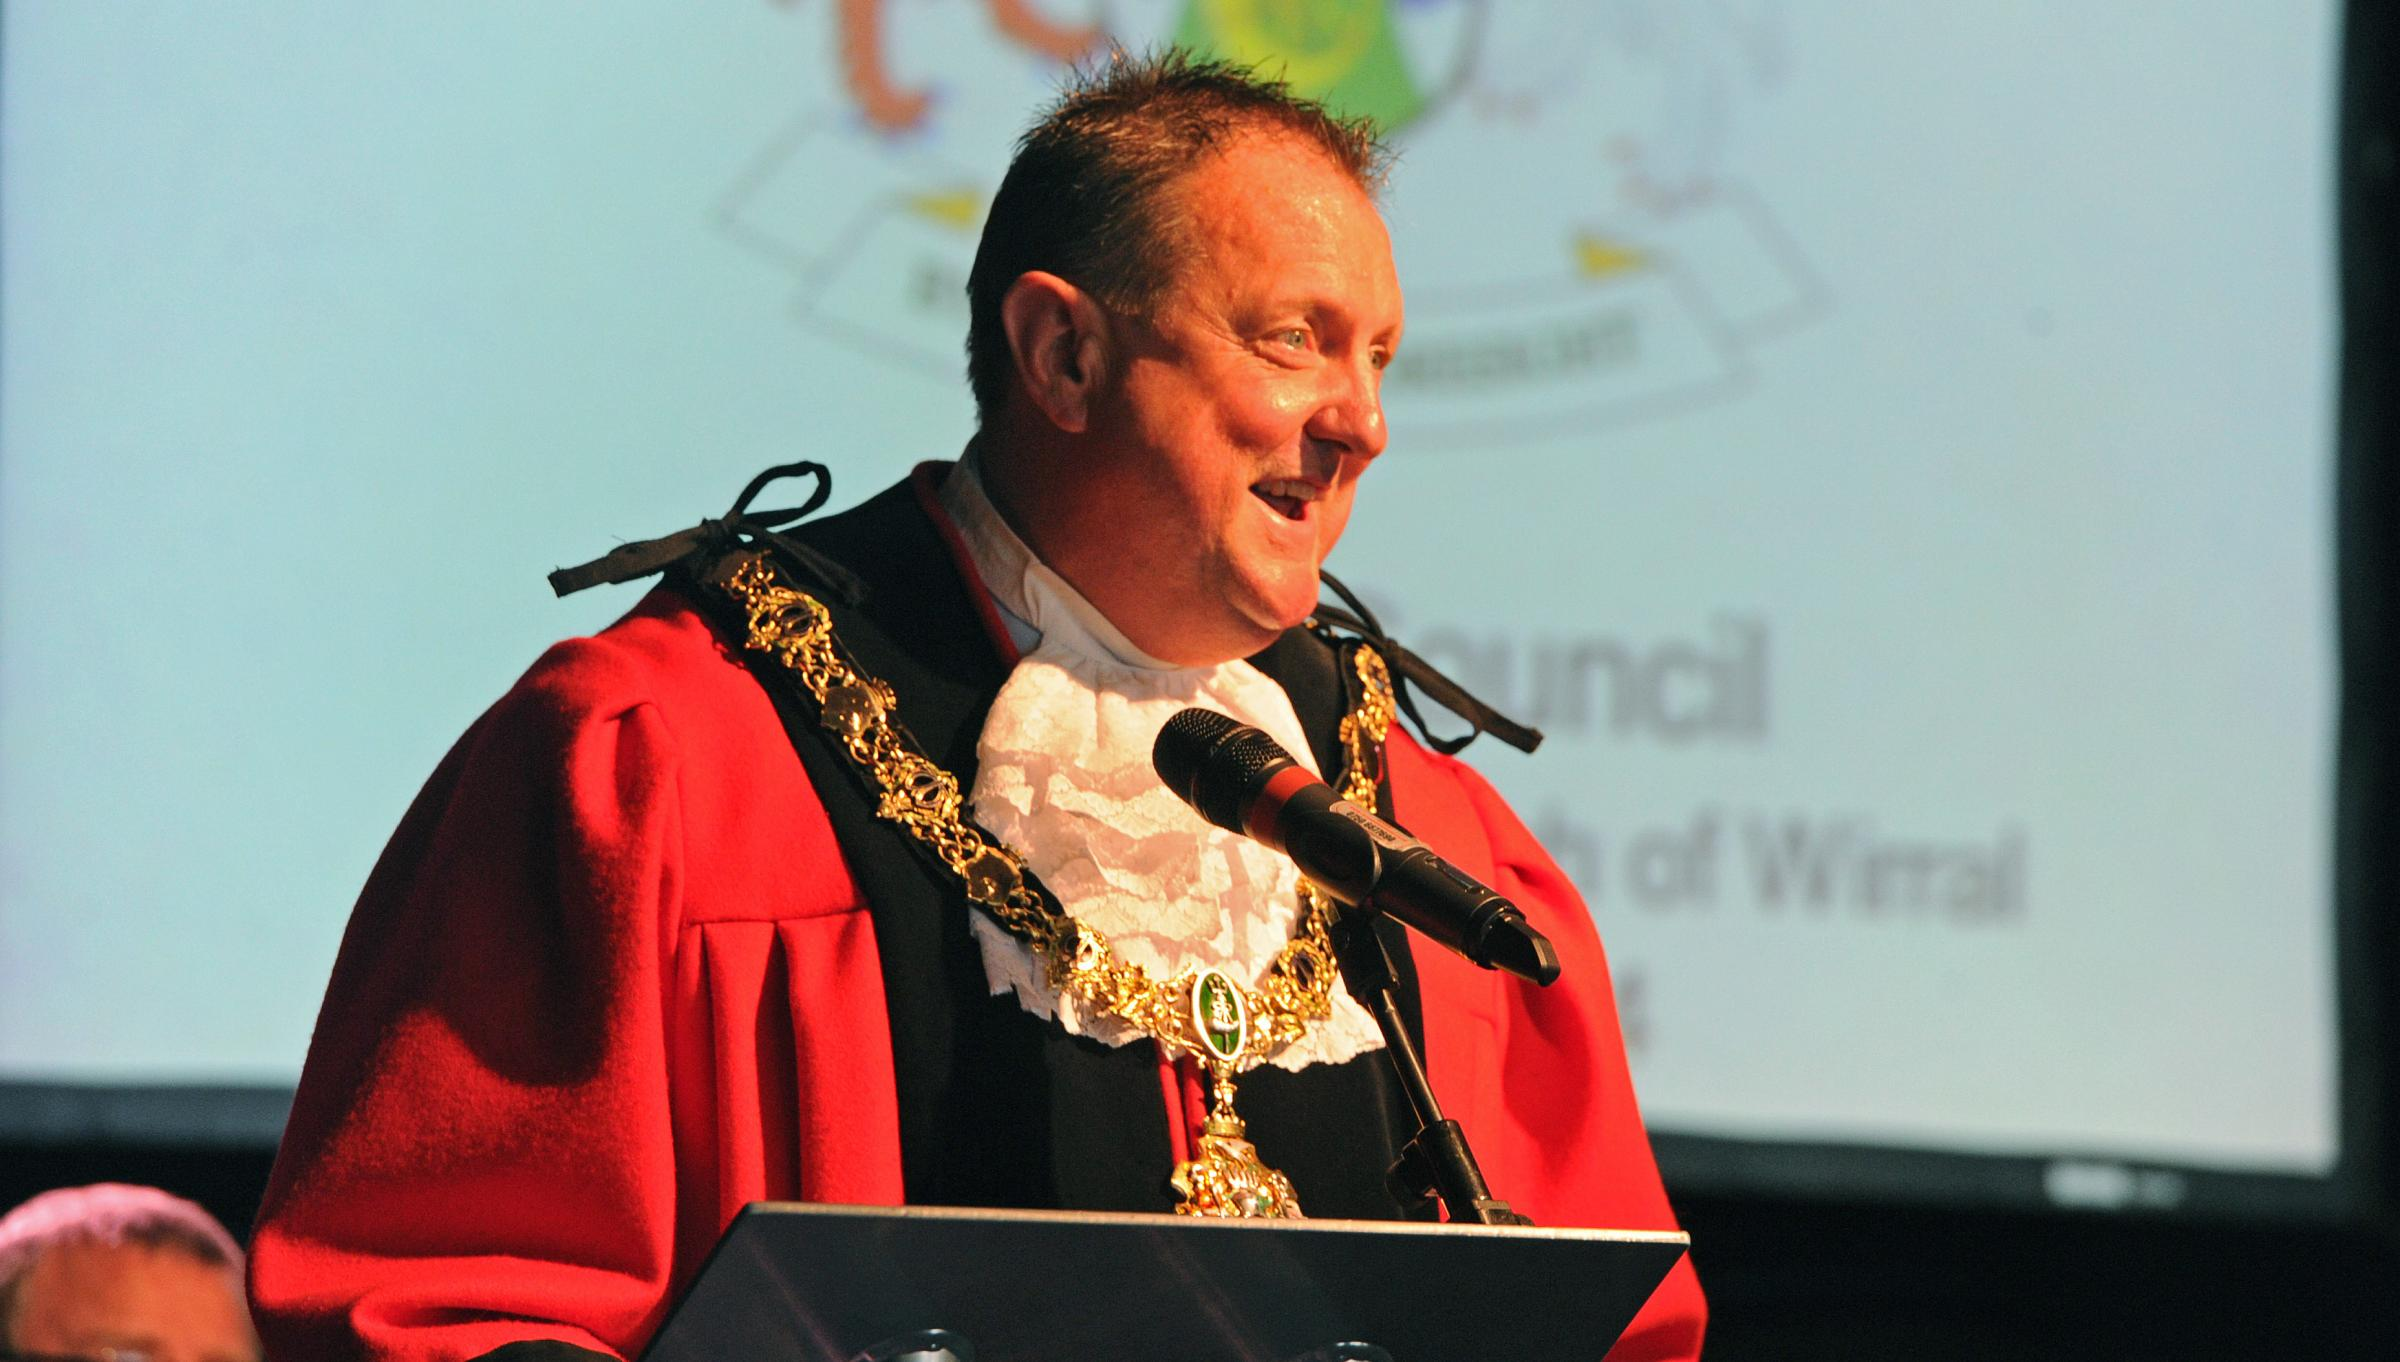 VIDEO: Former council leader takes up Wirral's mayoral chains